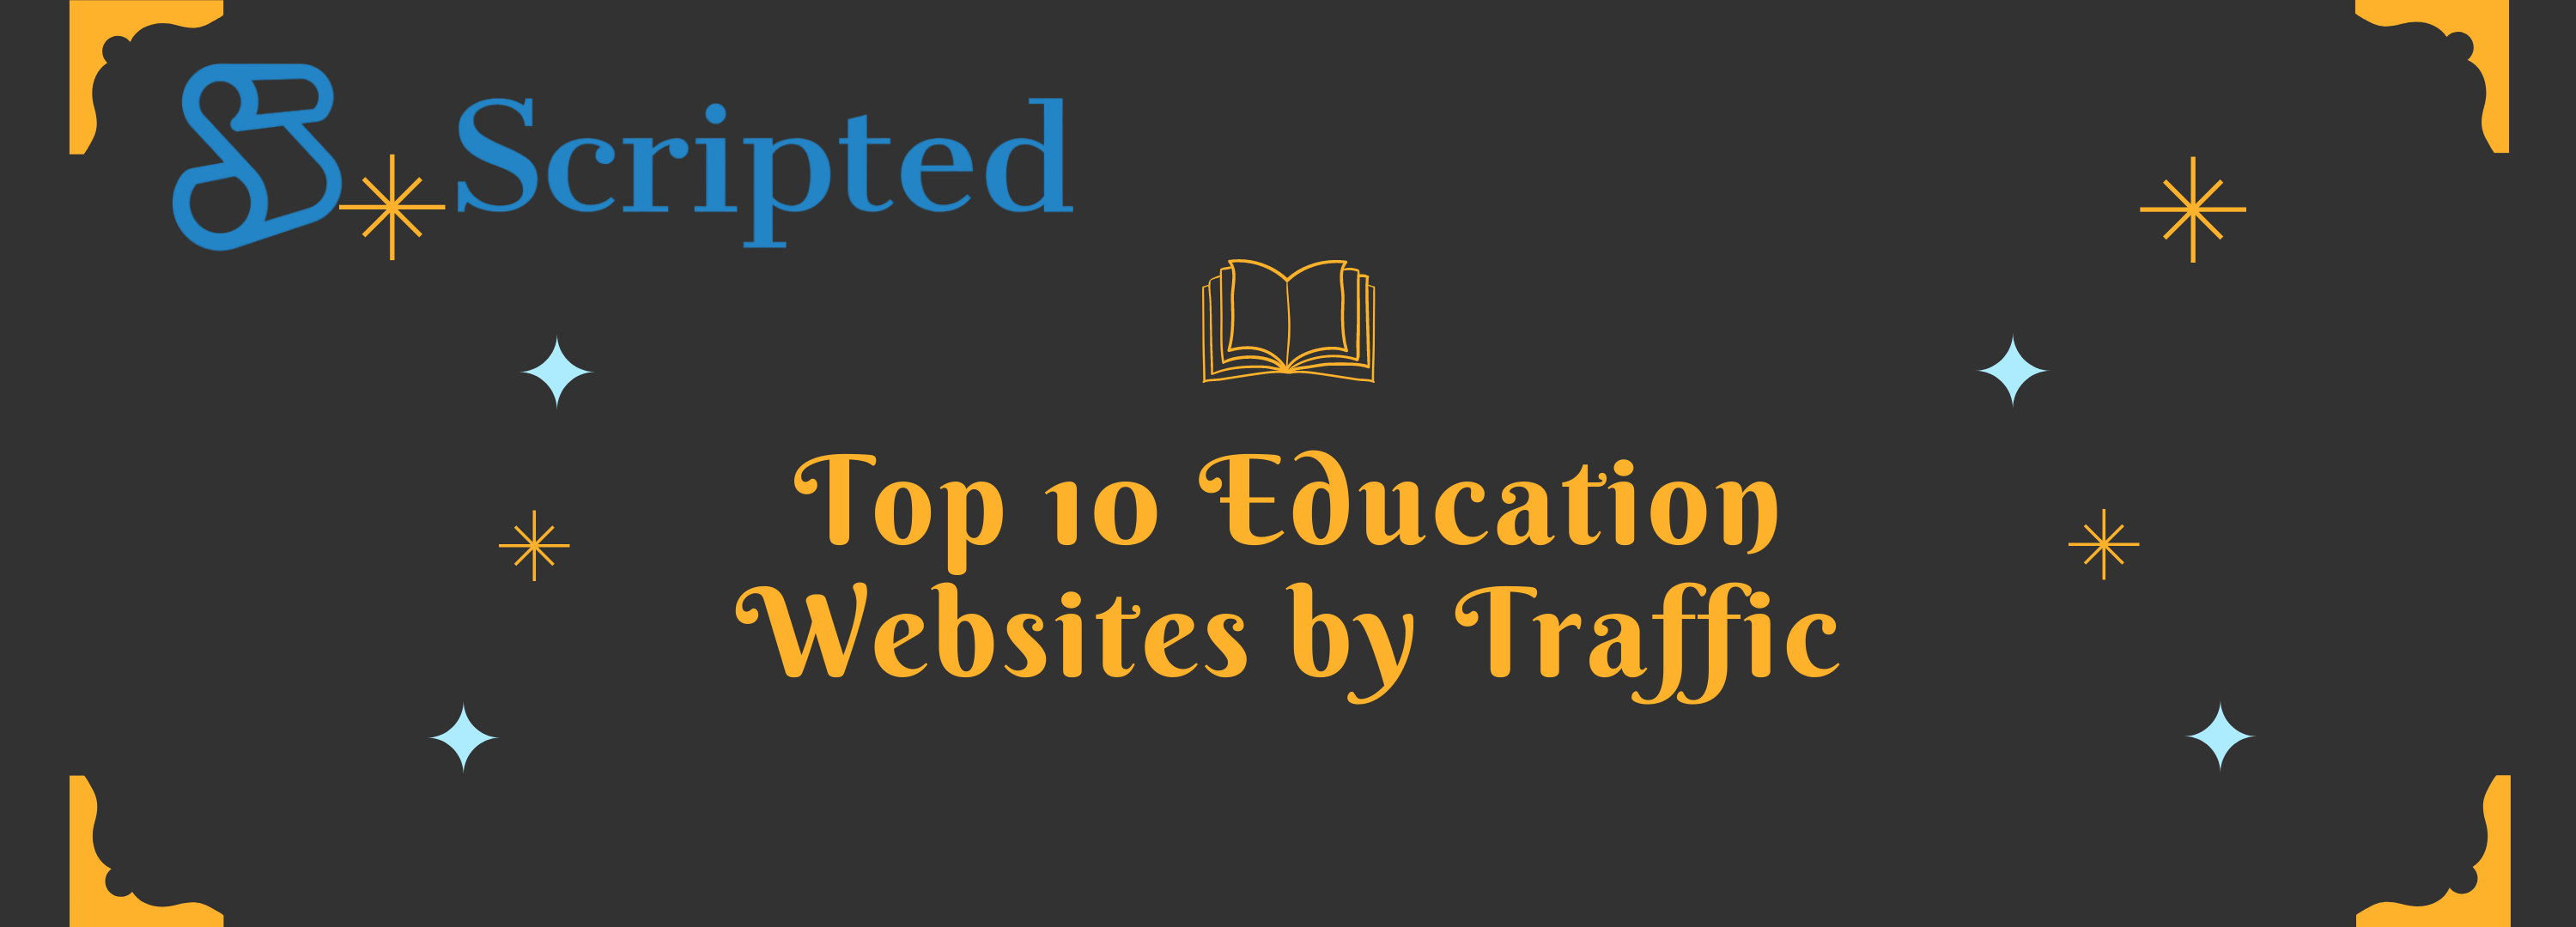 Top 10 Education Websites by Traffic